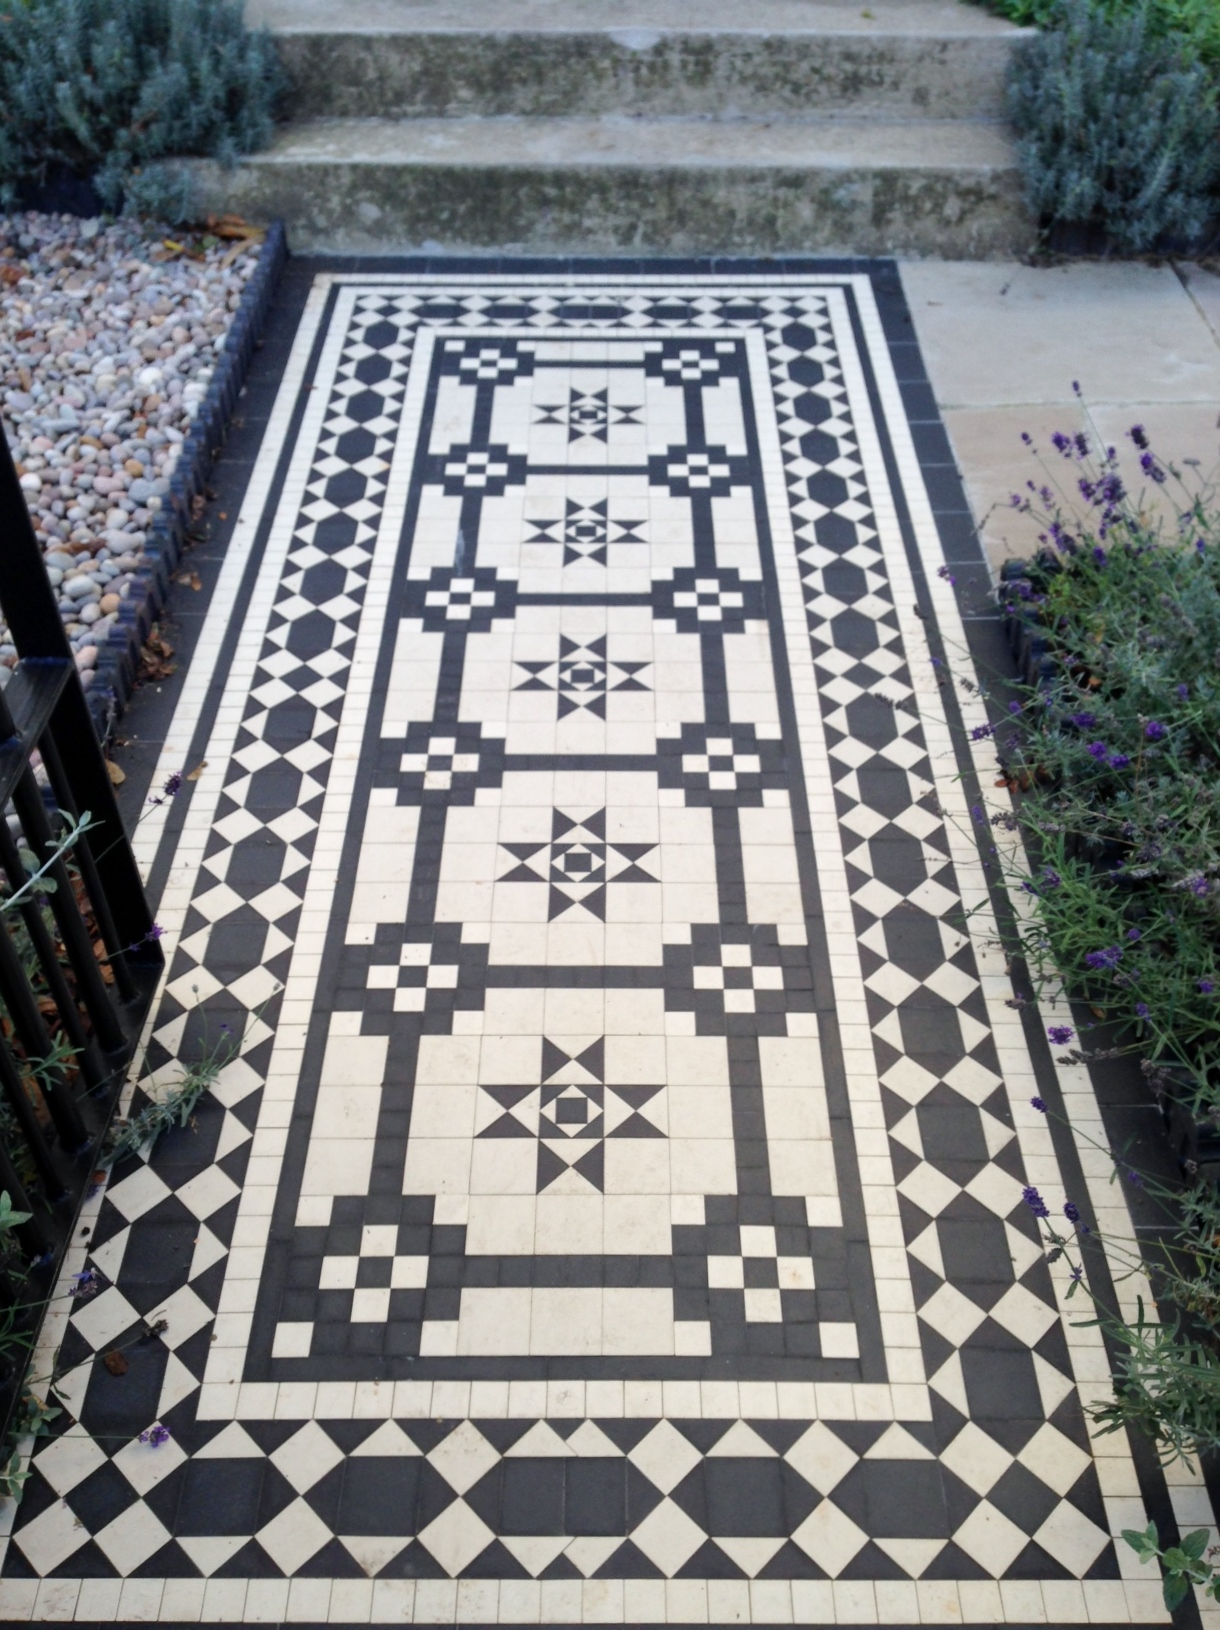 Islington Victorian mosaic tile path York stone sandstone paving wrought iron rails and gate London (32)